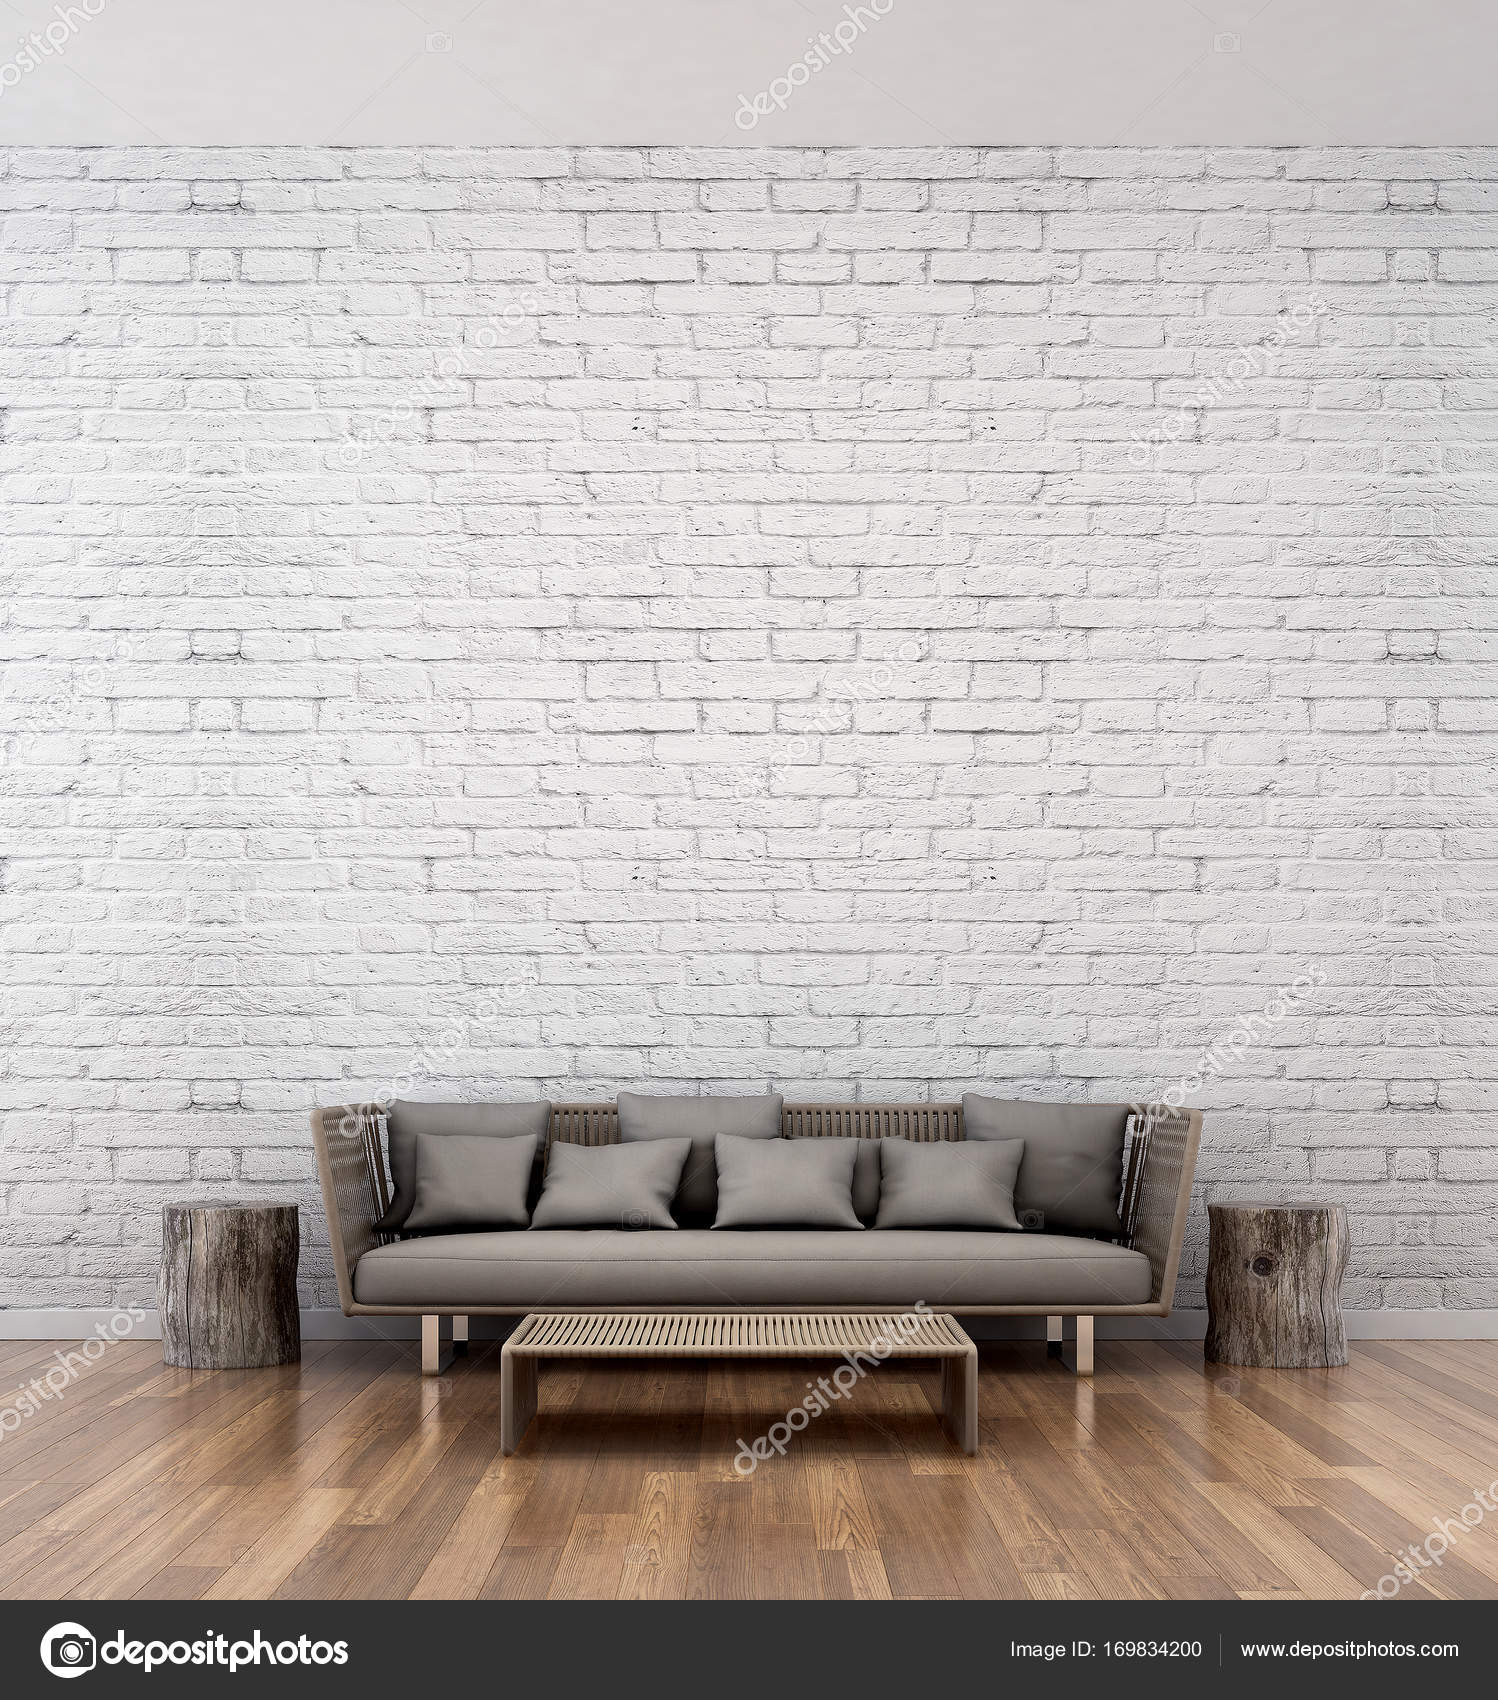 The interior design of loft living room and white brick wall ...